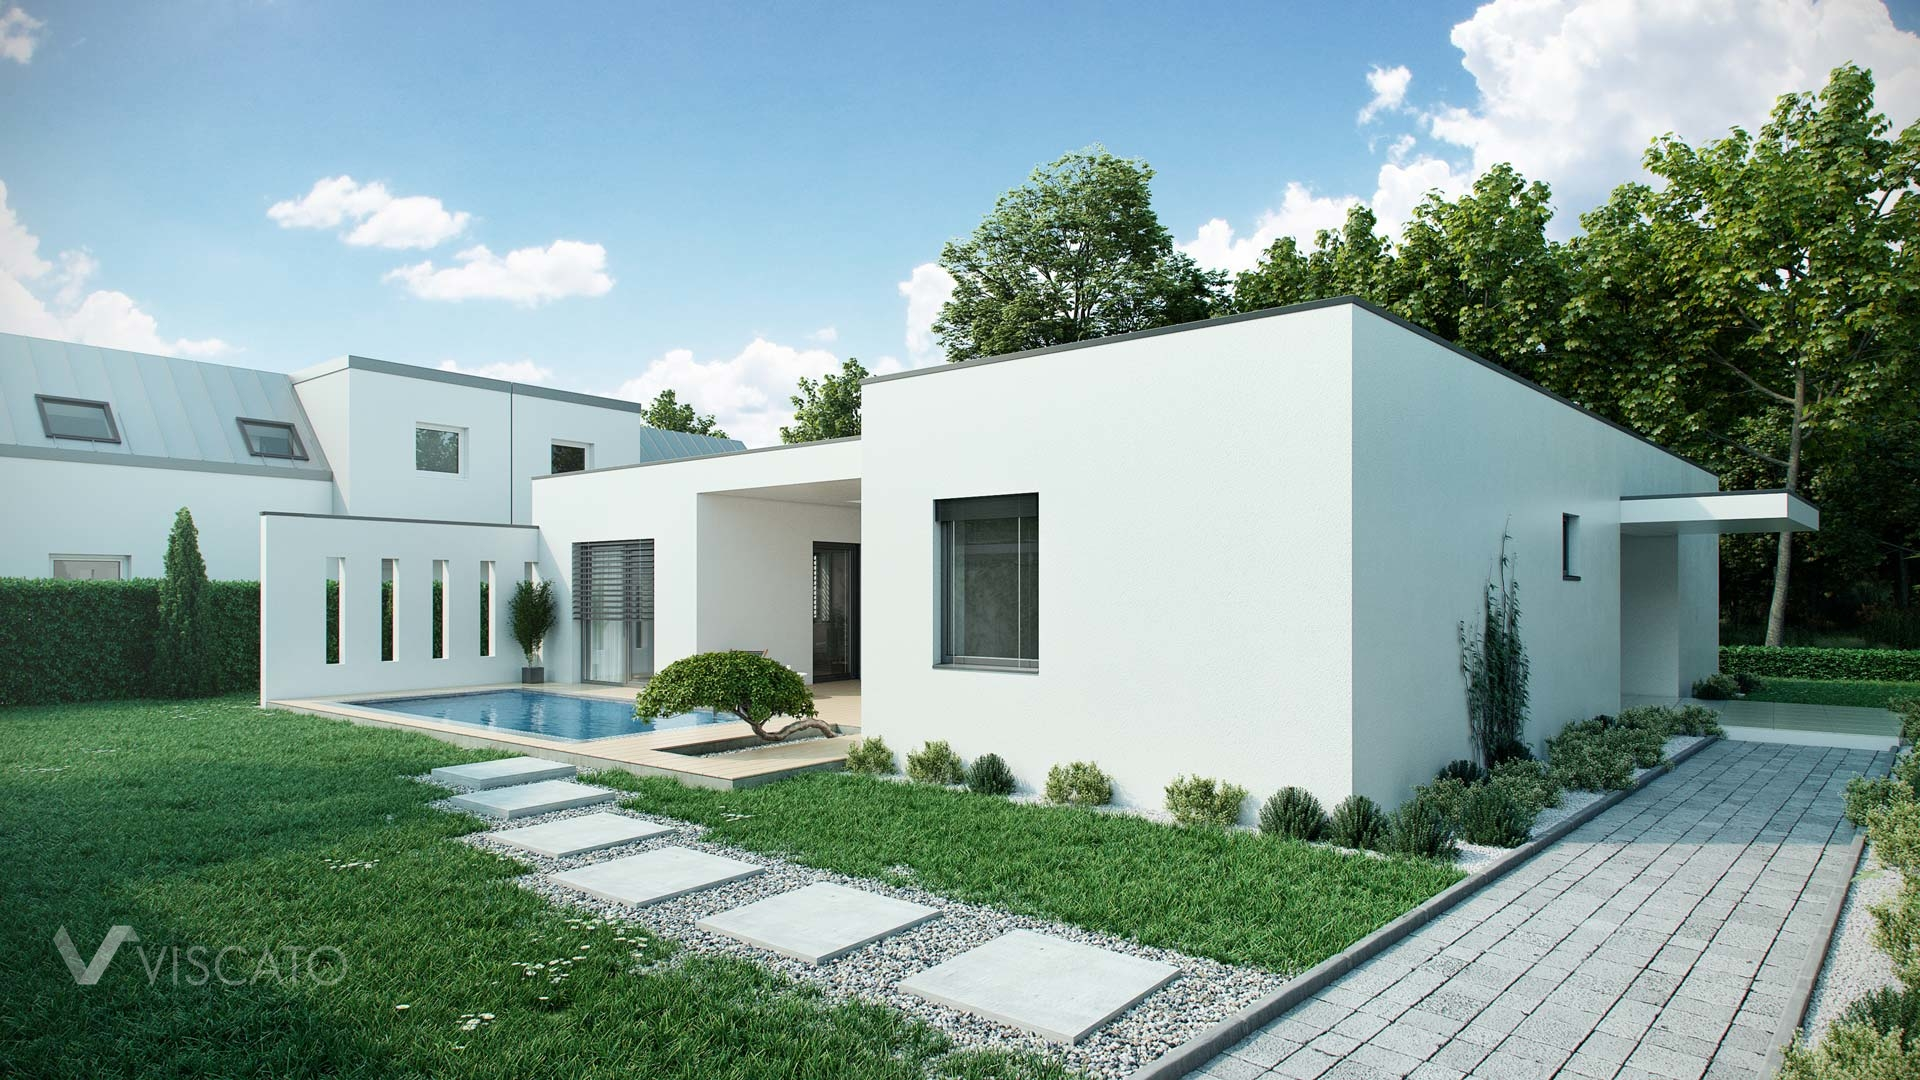 Architectural visualization of a single-family house with a swimming pool Viscato